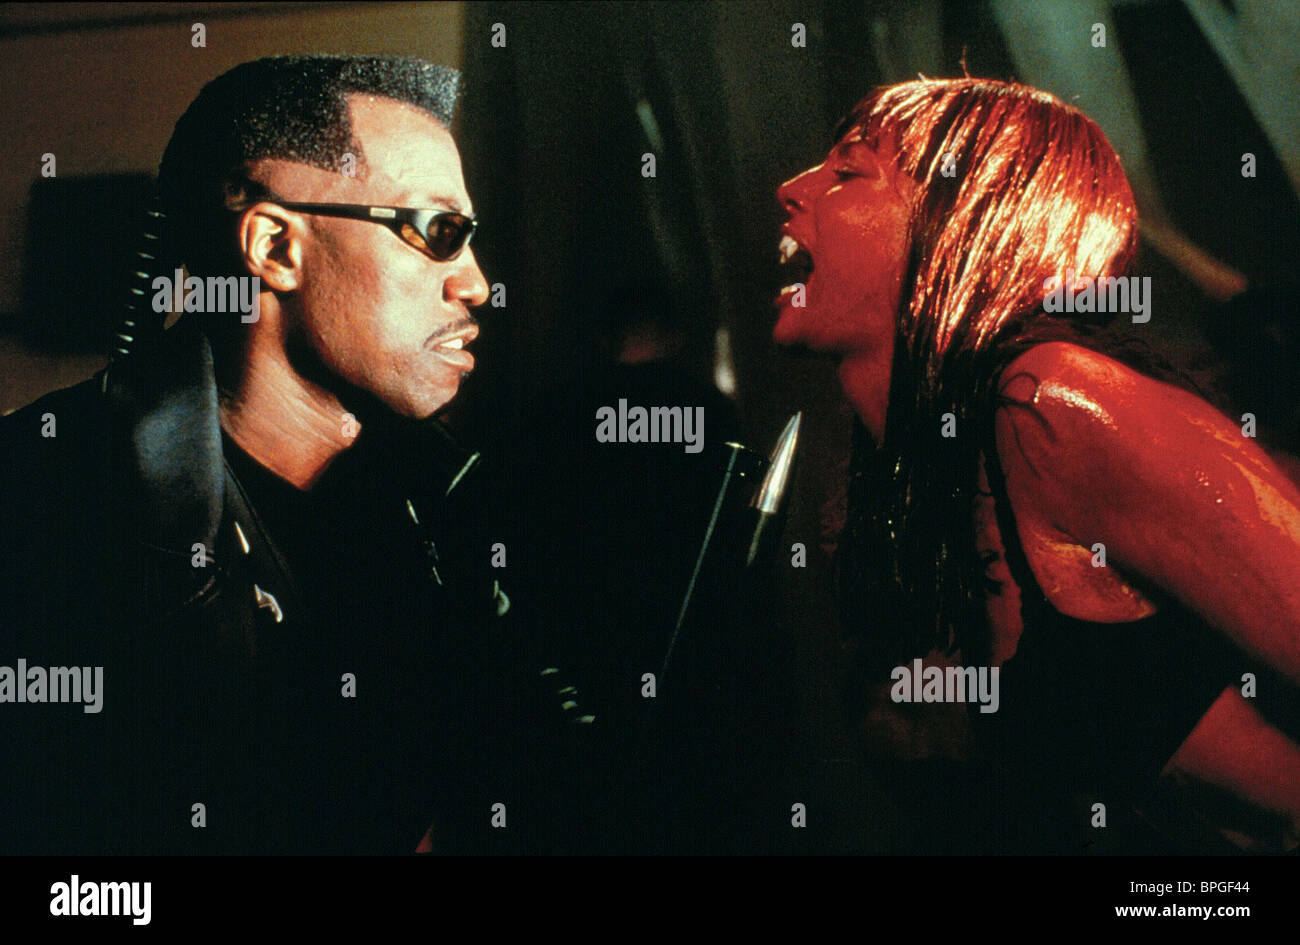 Traci lords in blade